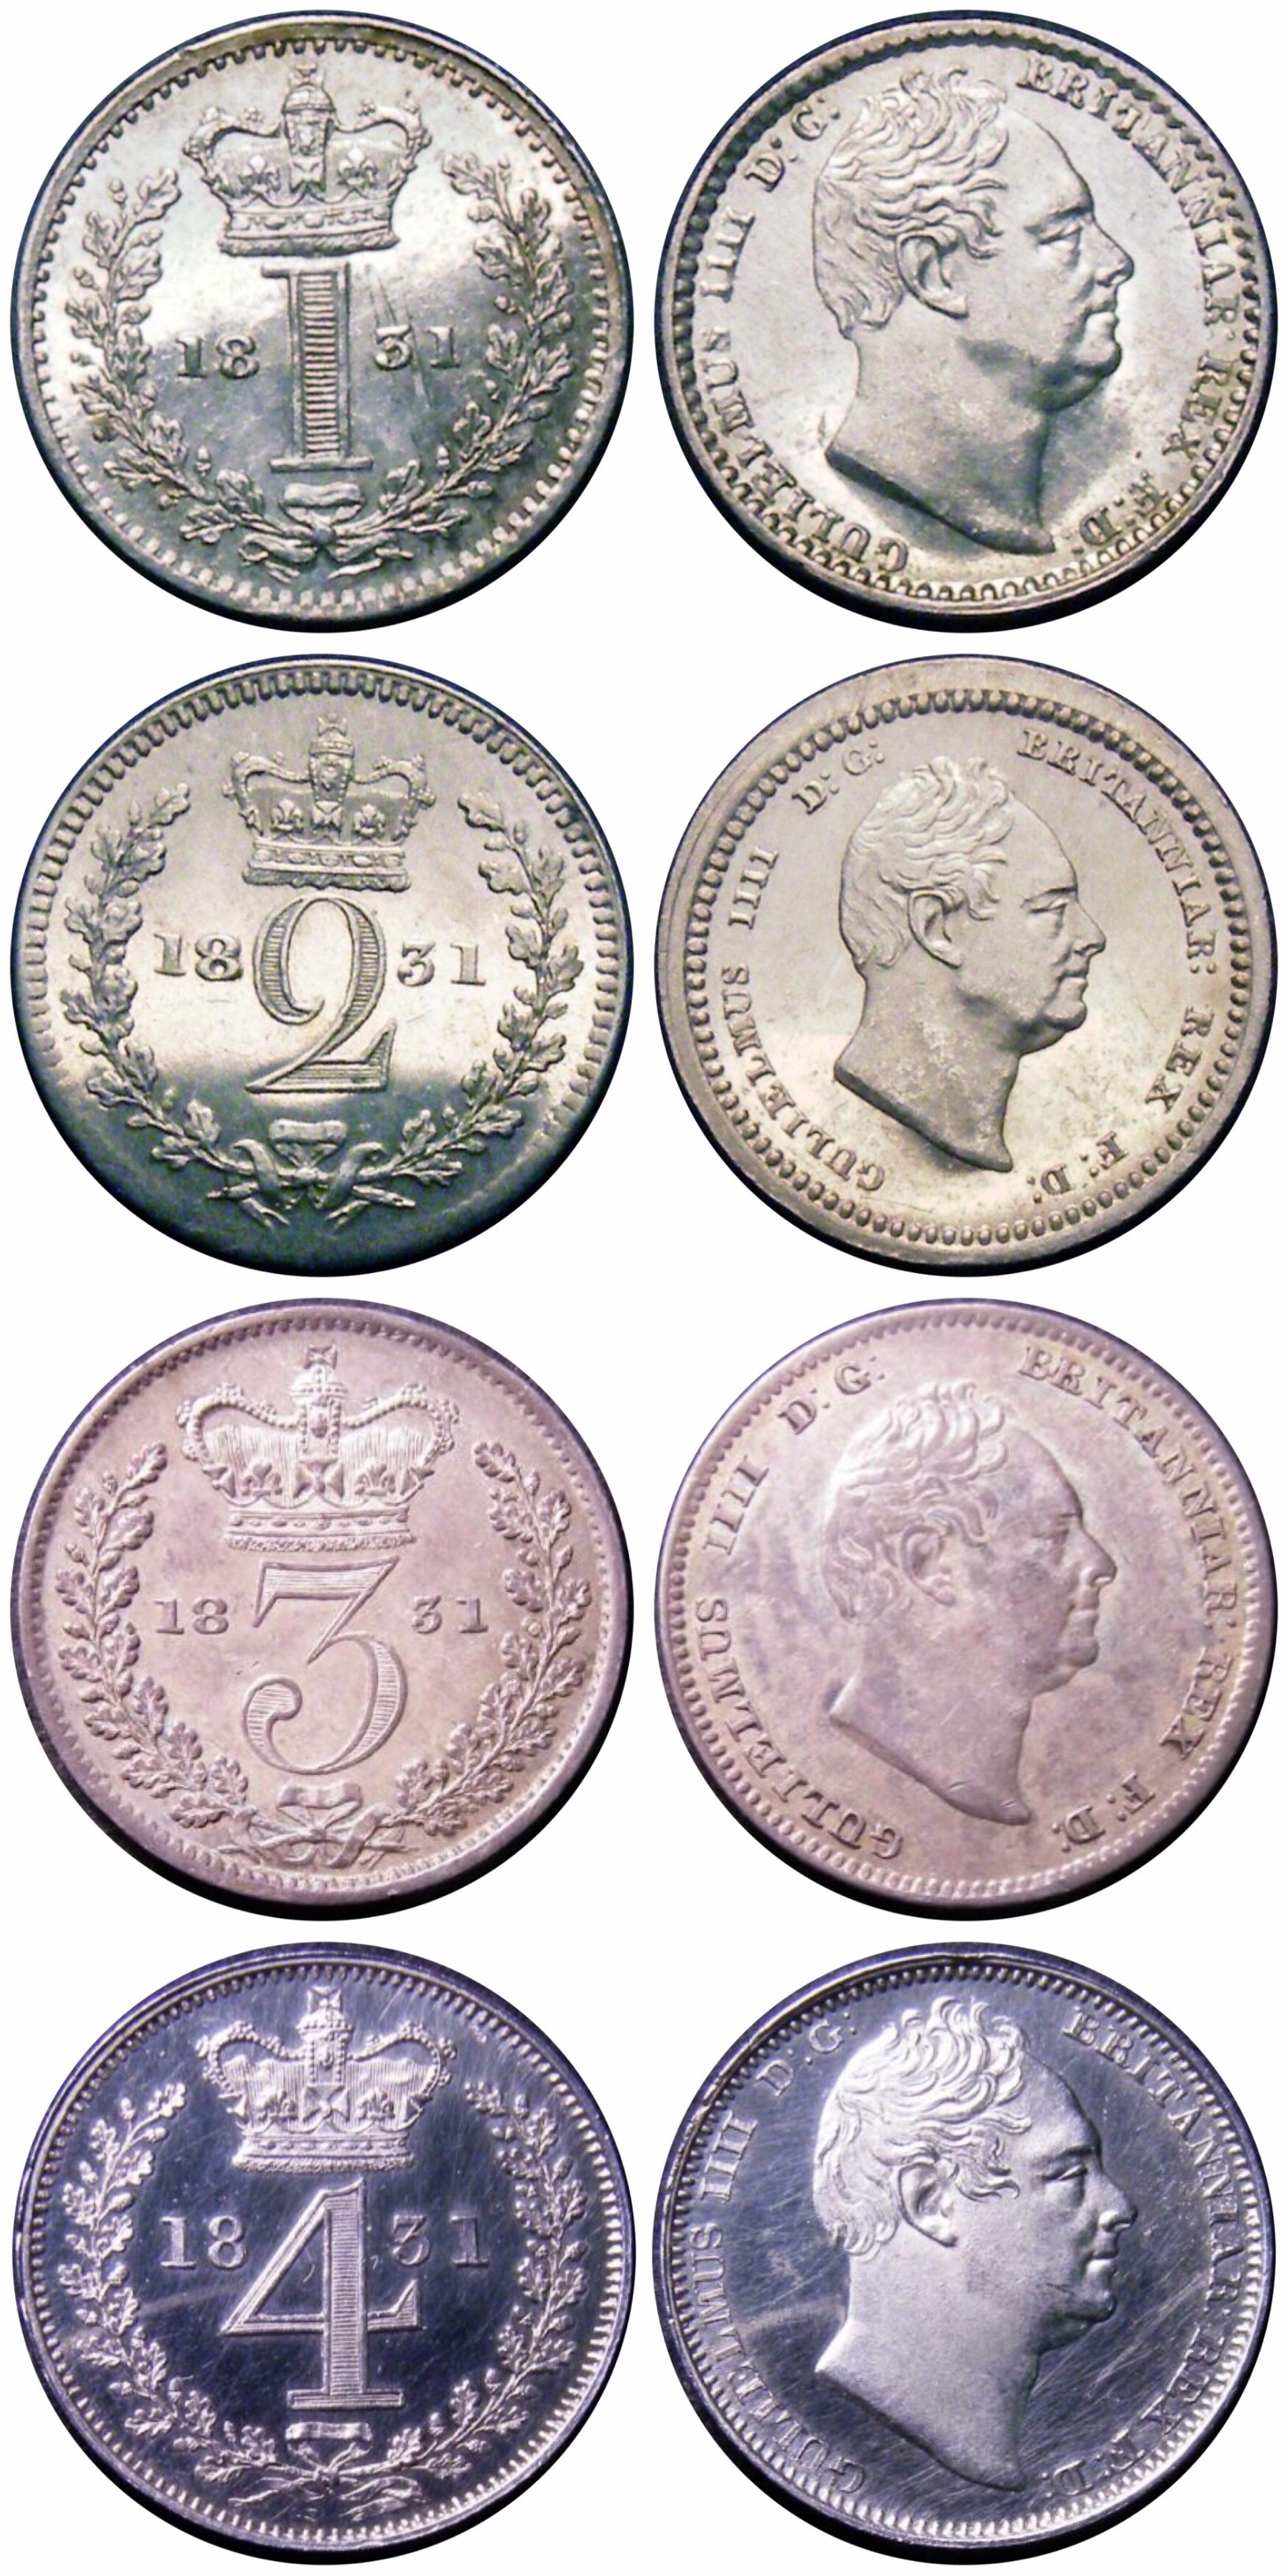 1831 Maundy set, CGS 82 80 65 78, gEF to Choice UNC